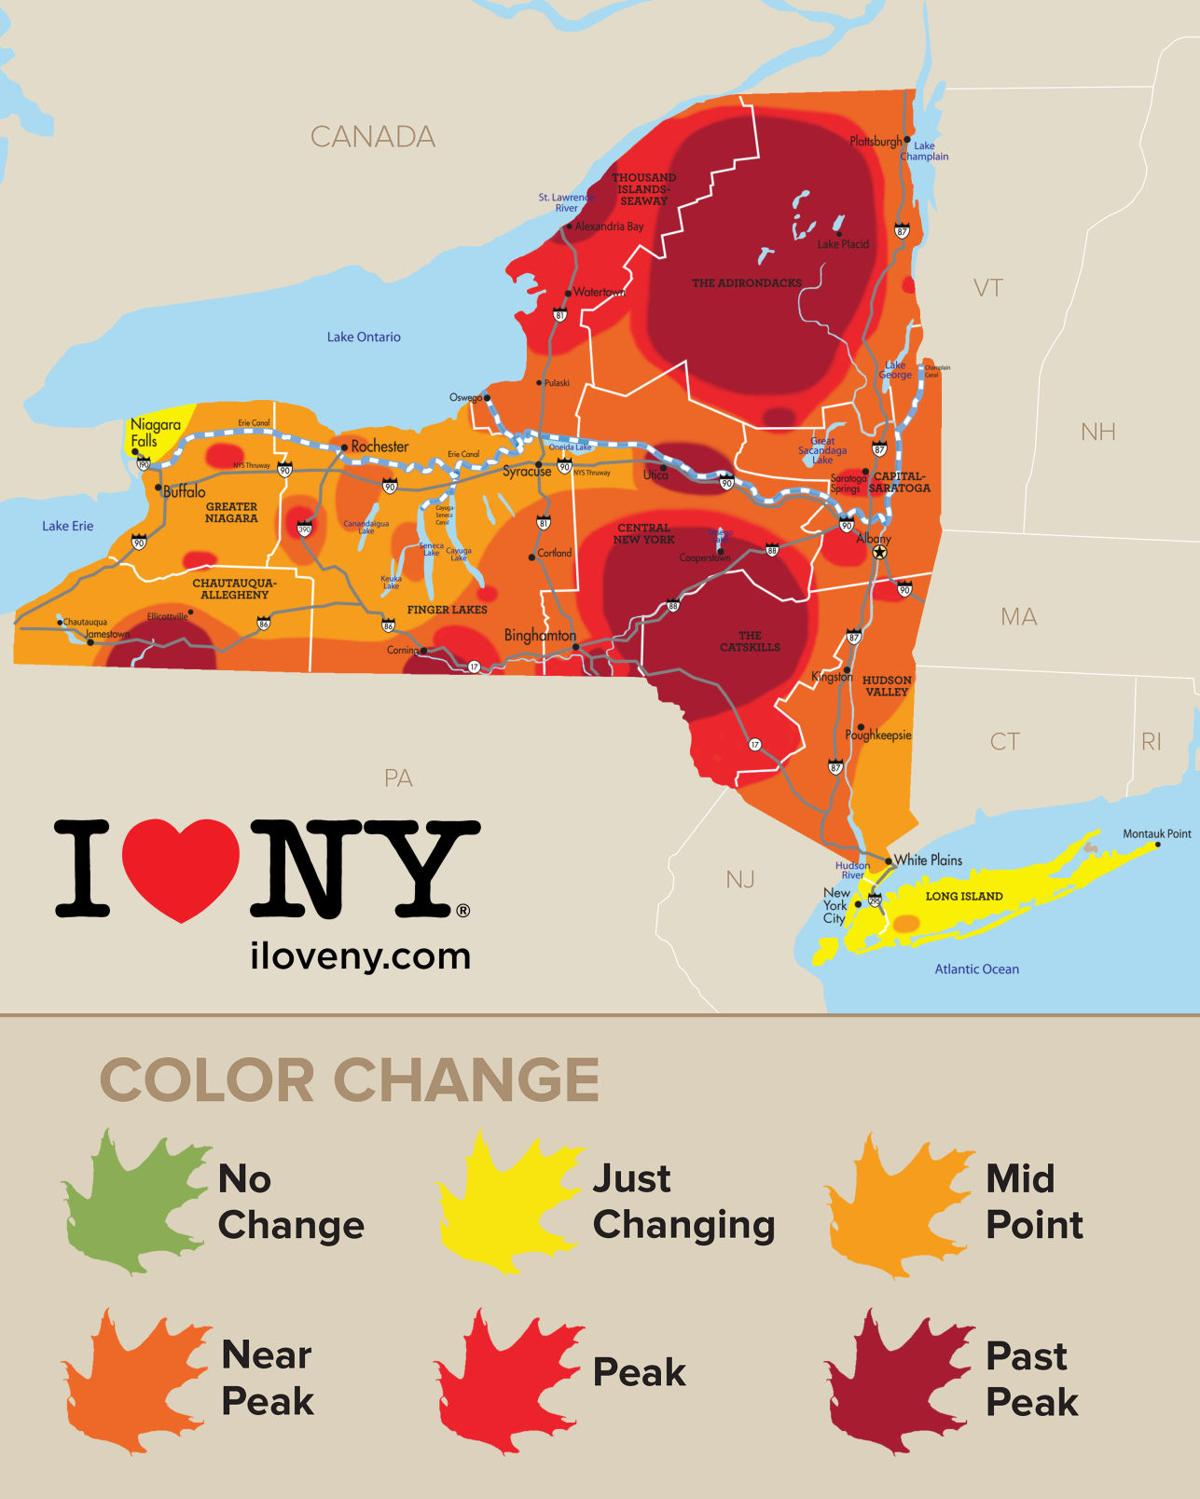 New york state fall foliage report for week of oct 18 local new york state fall foliage report for week of oct 18 sciox Images